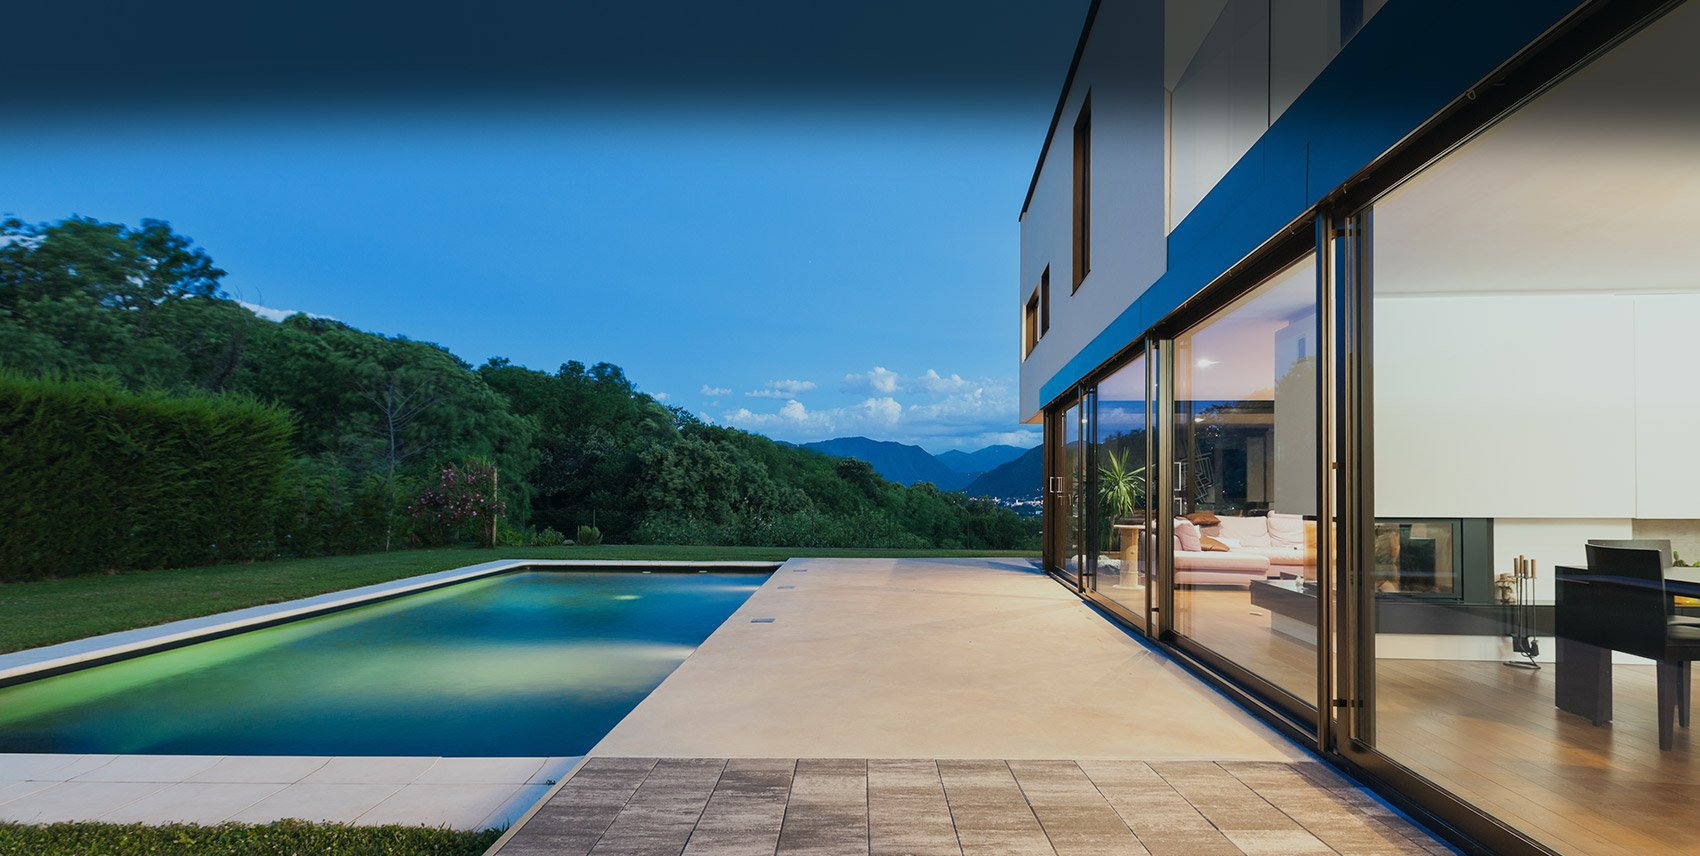 Sotheby's Realty